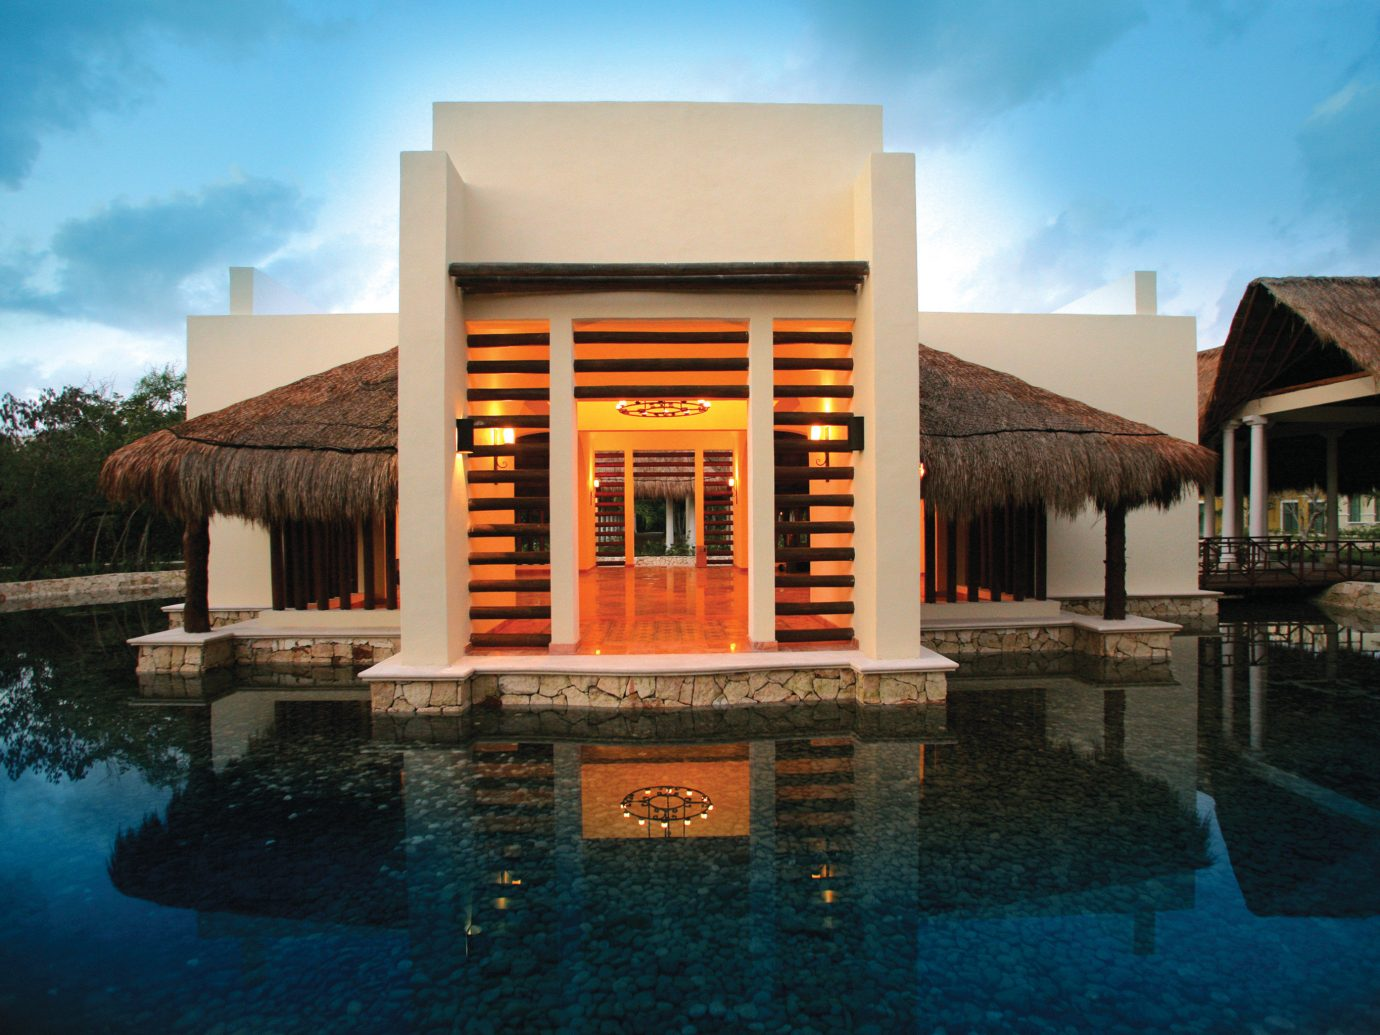 All-Inclusive Resorts Elegant Exterior Hotels Luxury Modern Villa Waterfront sky outdoor water building house property Architecture home estate facade professional swimming pool Resort stone